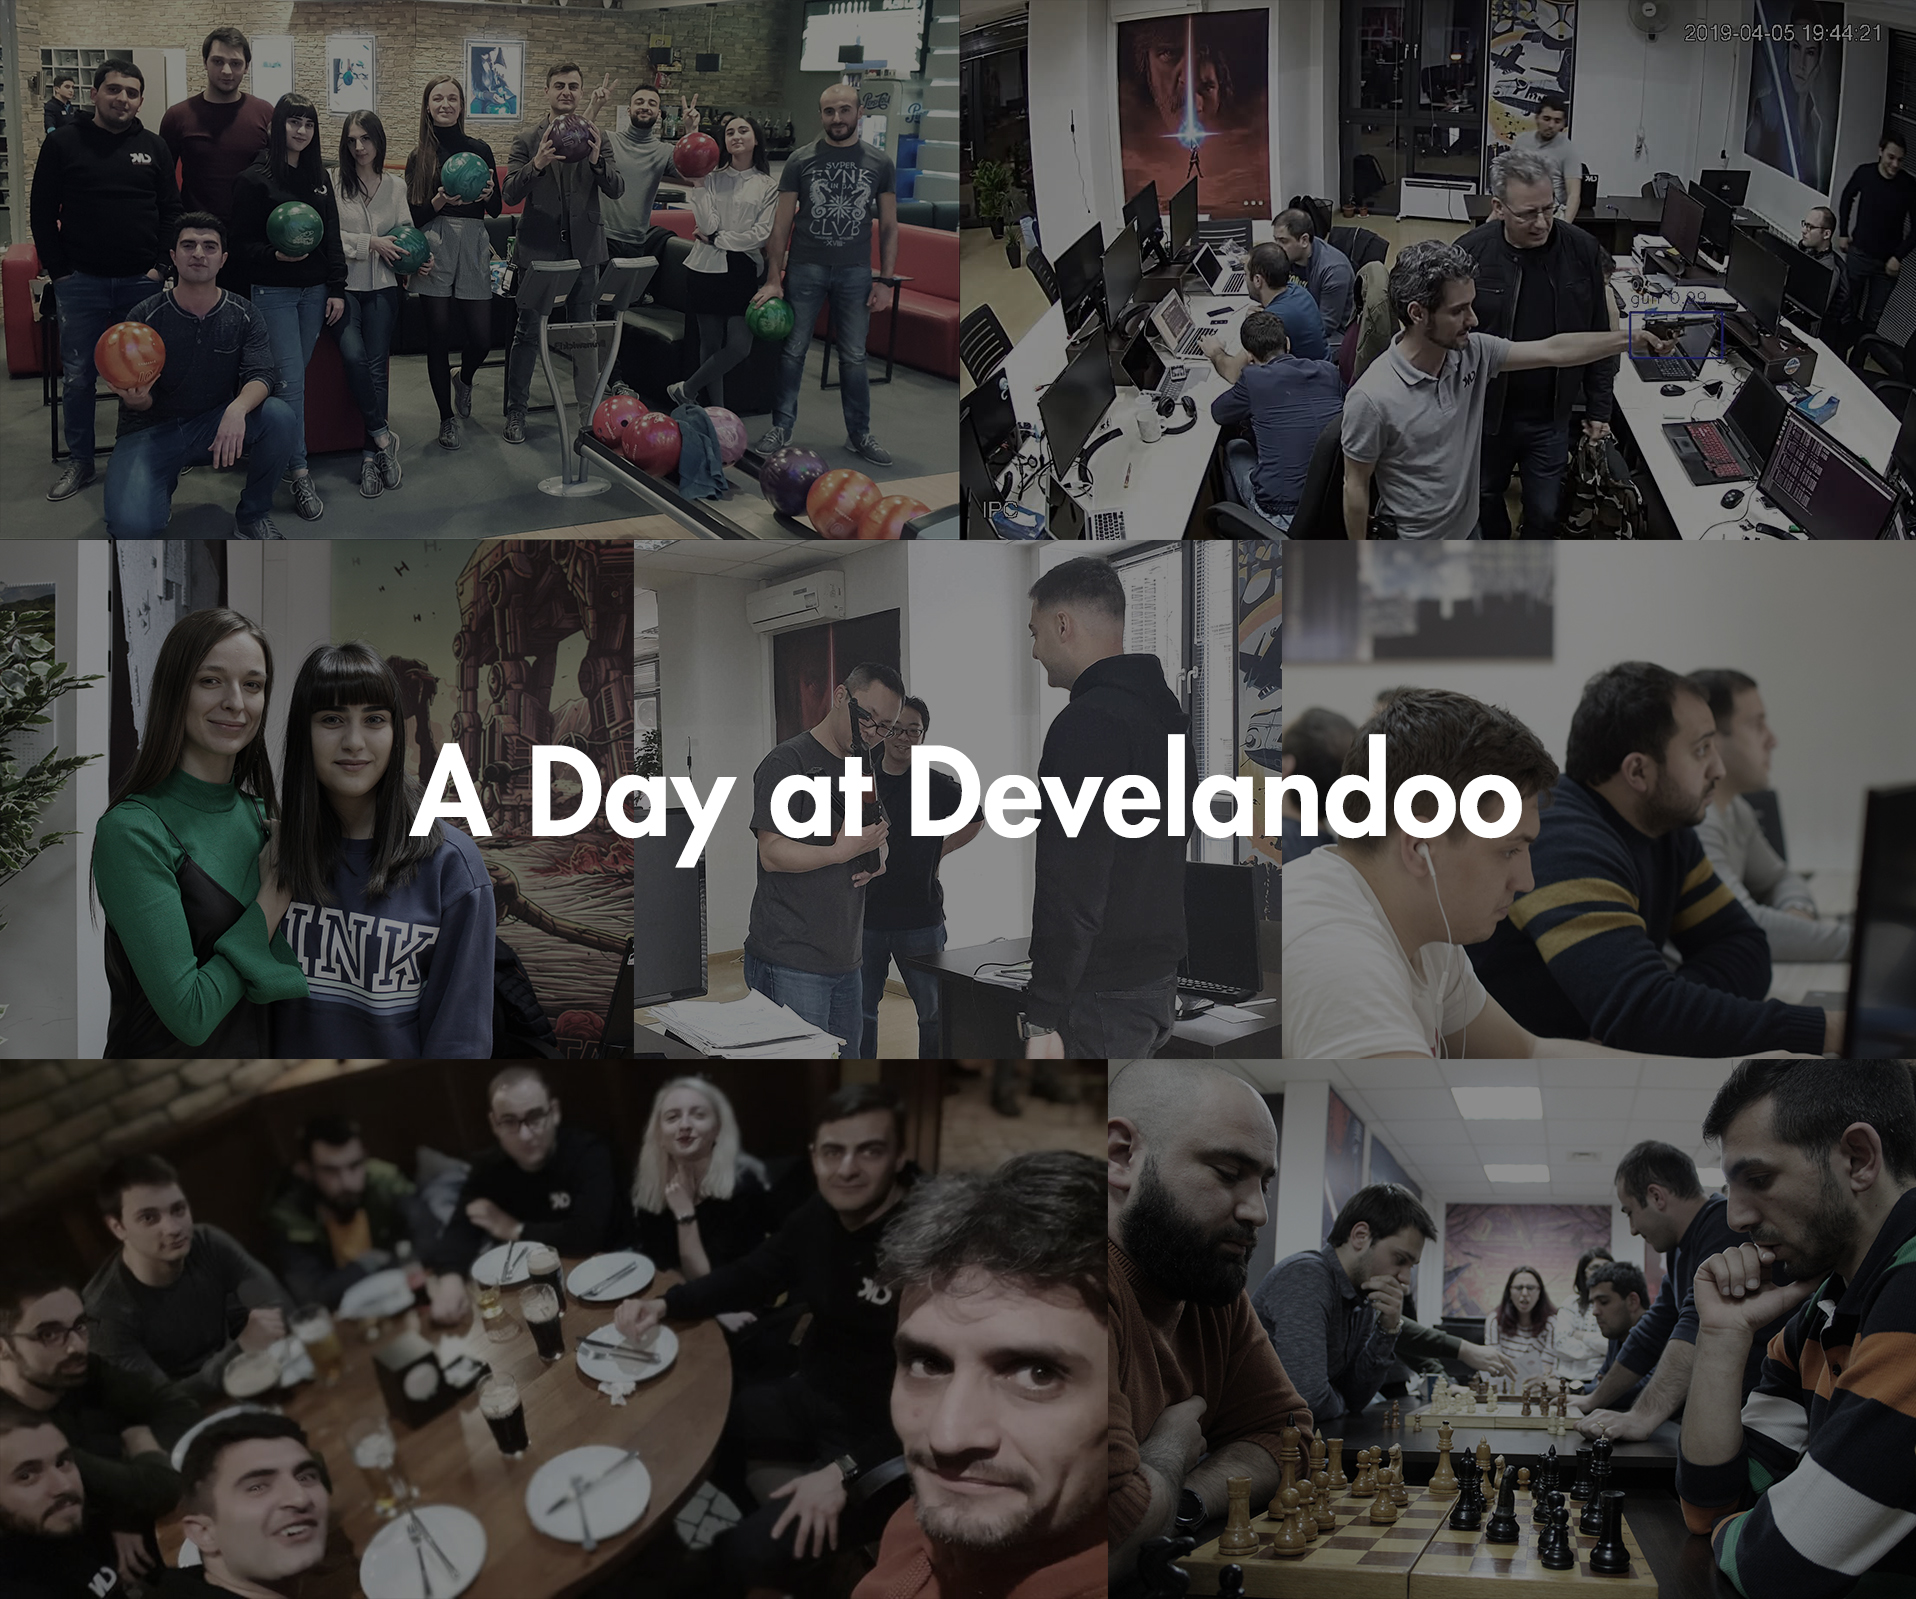 A Day at Develandoo